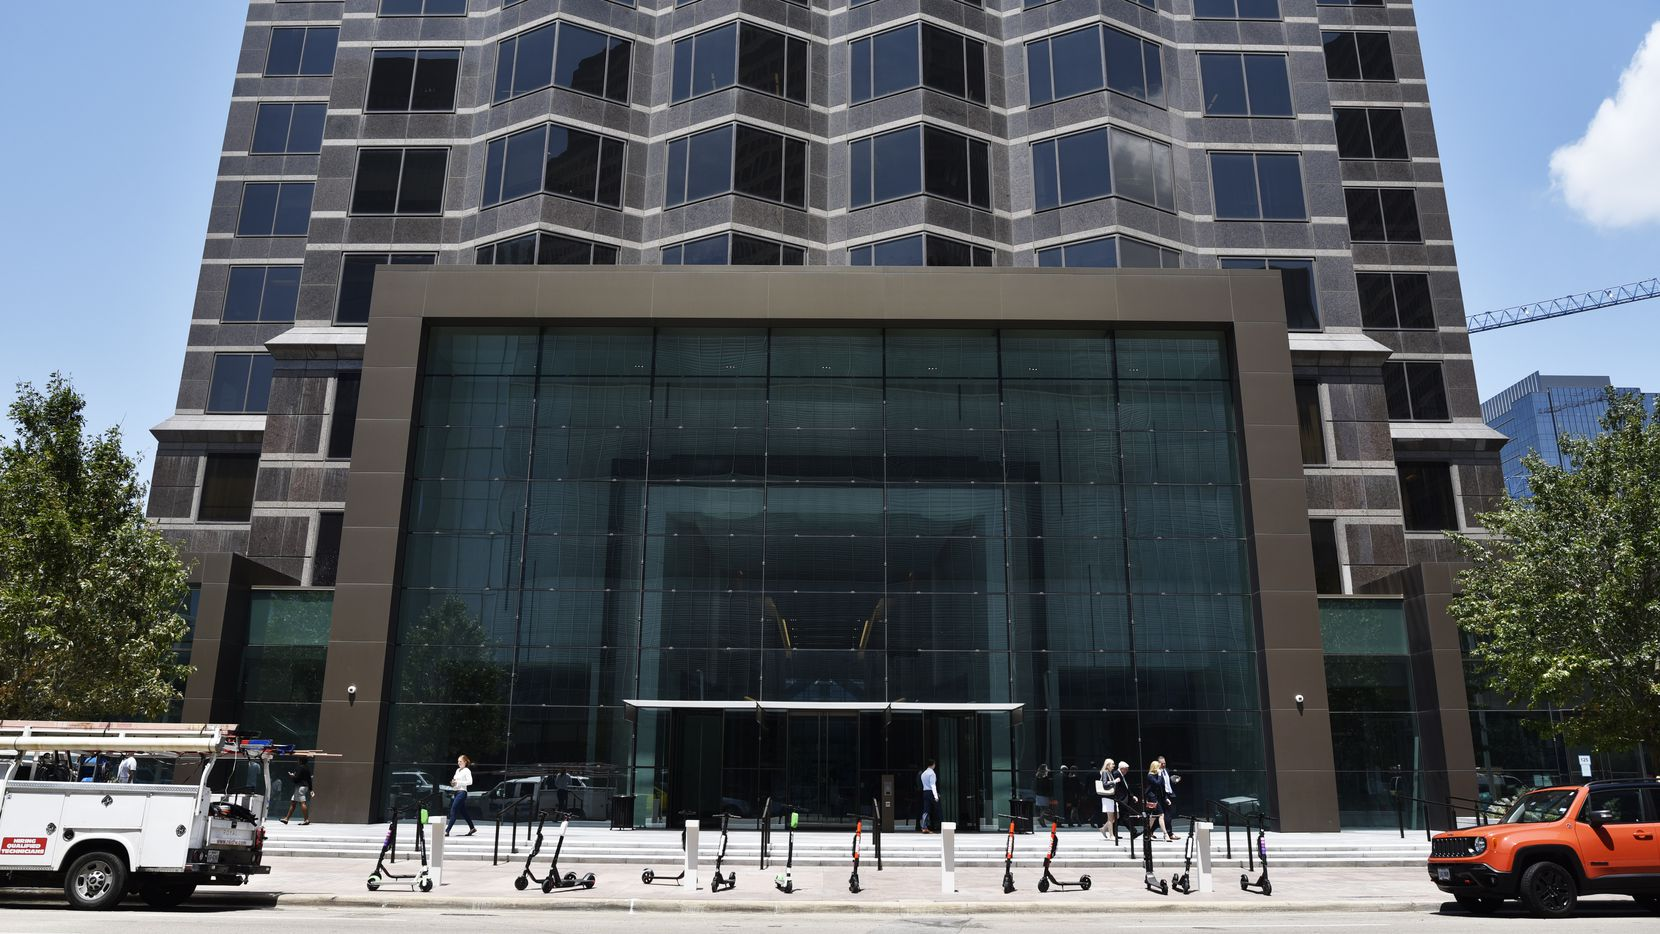 Sara Terry most recently helped lease the landmark Trammell Crow Center in downtown Dallas.